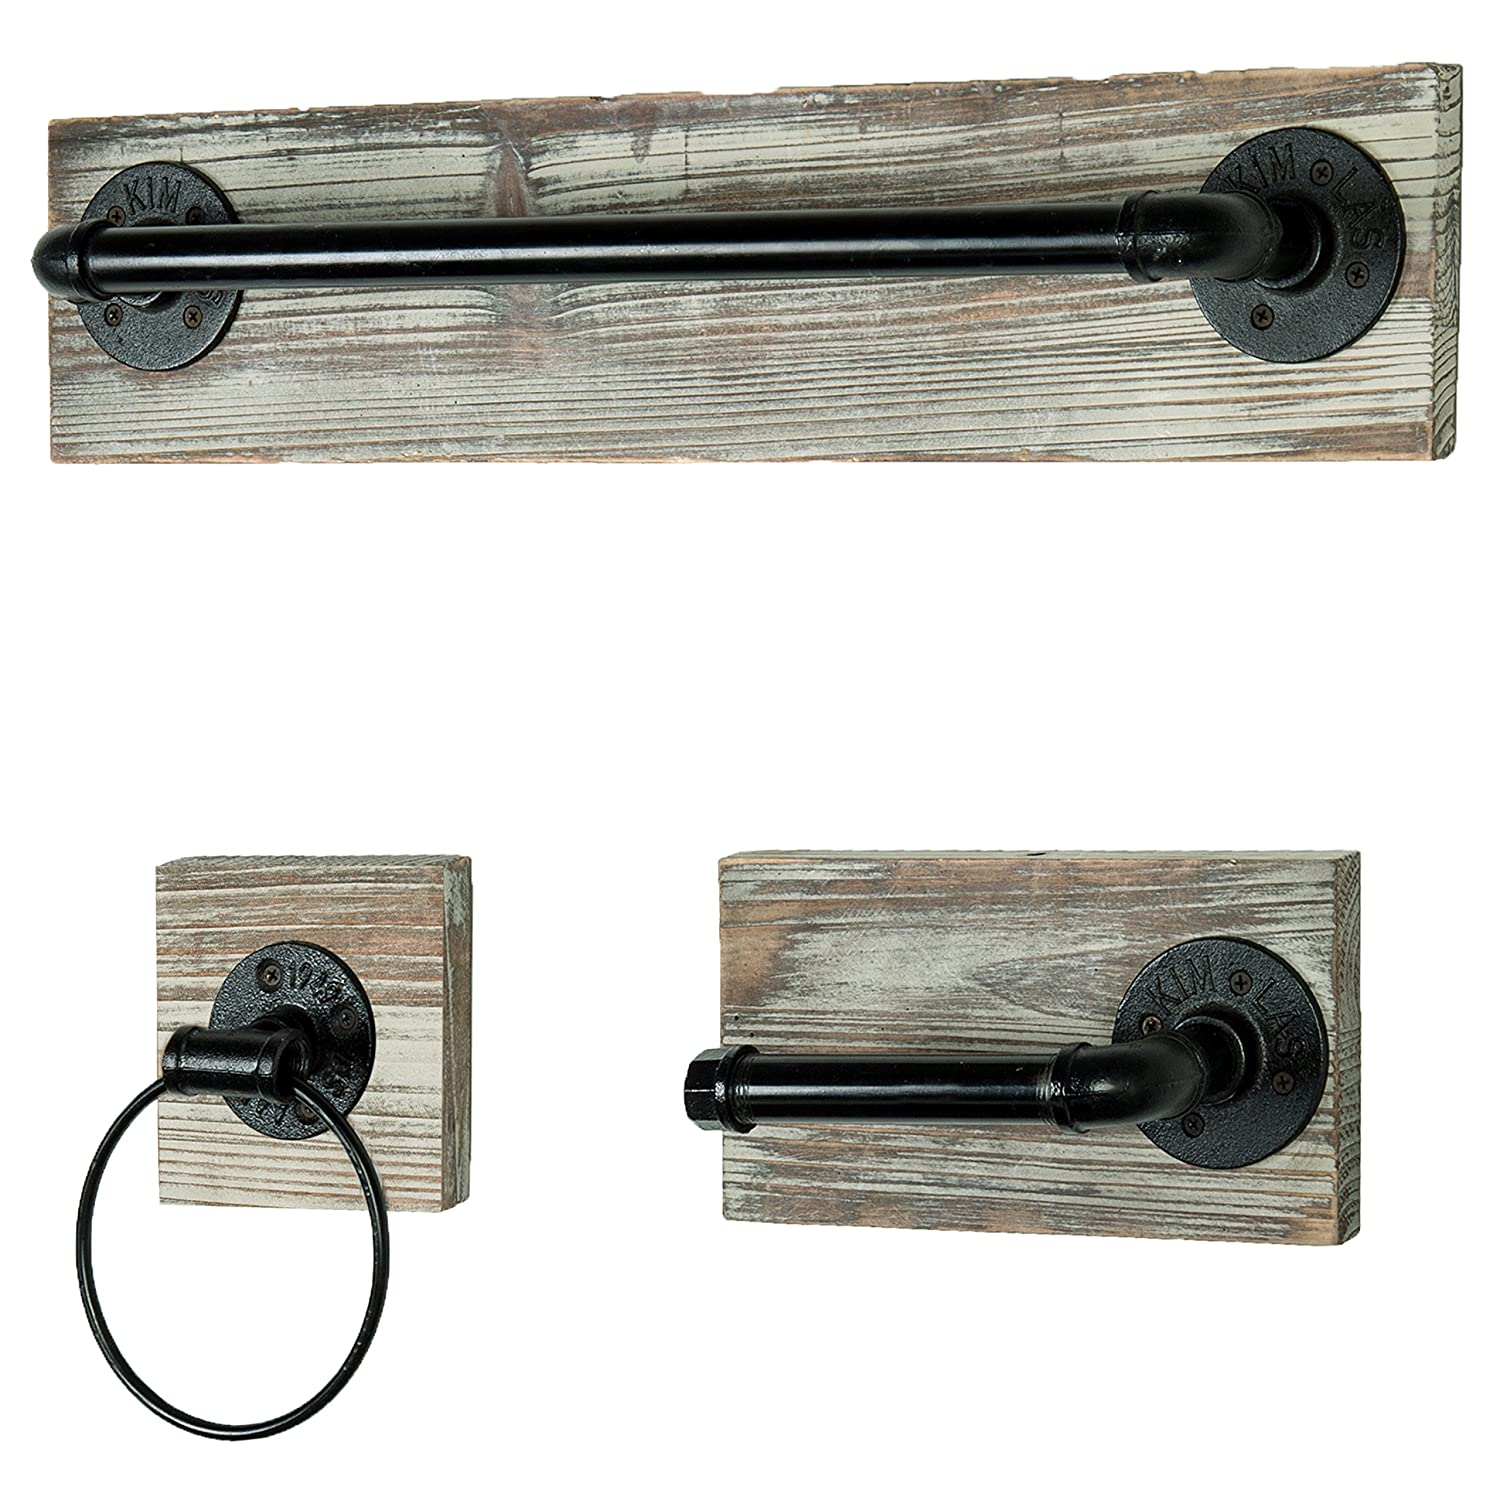 MyGift Wall-Mounted Industrial Rustic 3 pc Bathroom Fixture with Towel Bar, Towel Ring & Tissue Holder